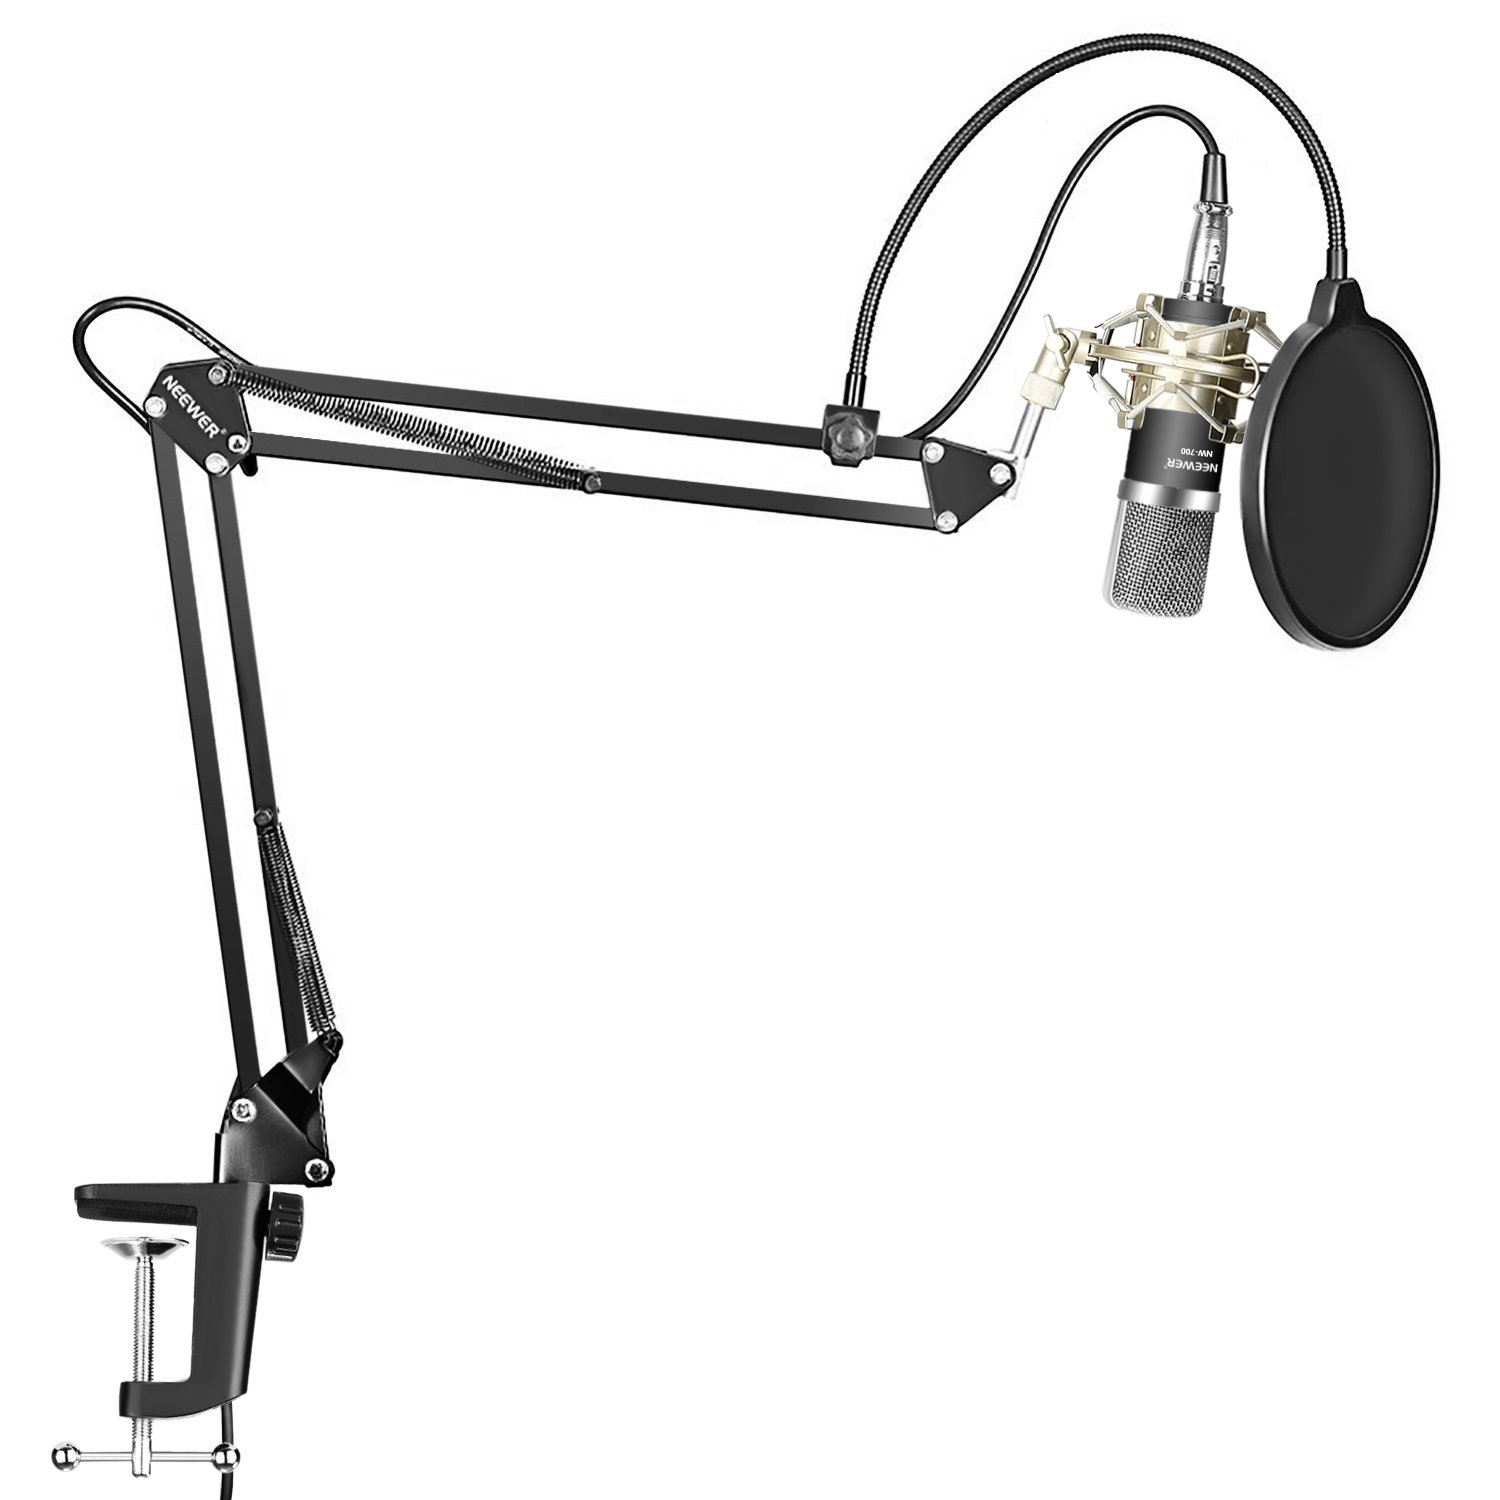 Neewer Condenser Microphone Kit - NW-700 Mic(Black), NW-35 Suspension Boom Scissor Arm Stand with Mount Clamp, Shock Mount (Silver), and Pop Filter for Home Studio Studio Broadcasting Recording 40091984